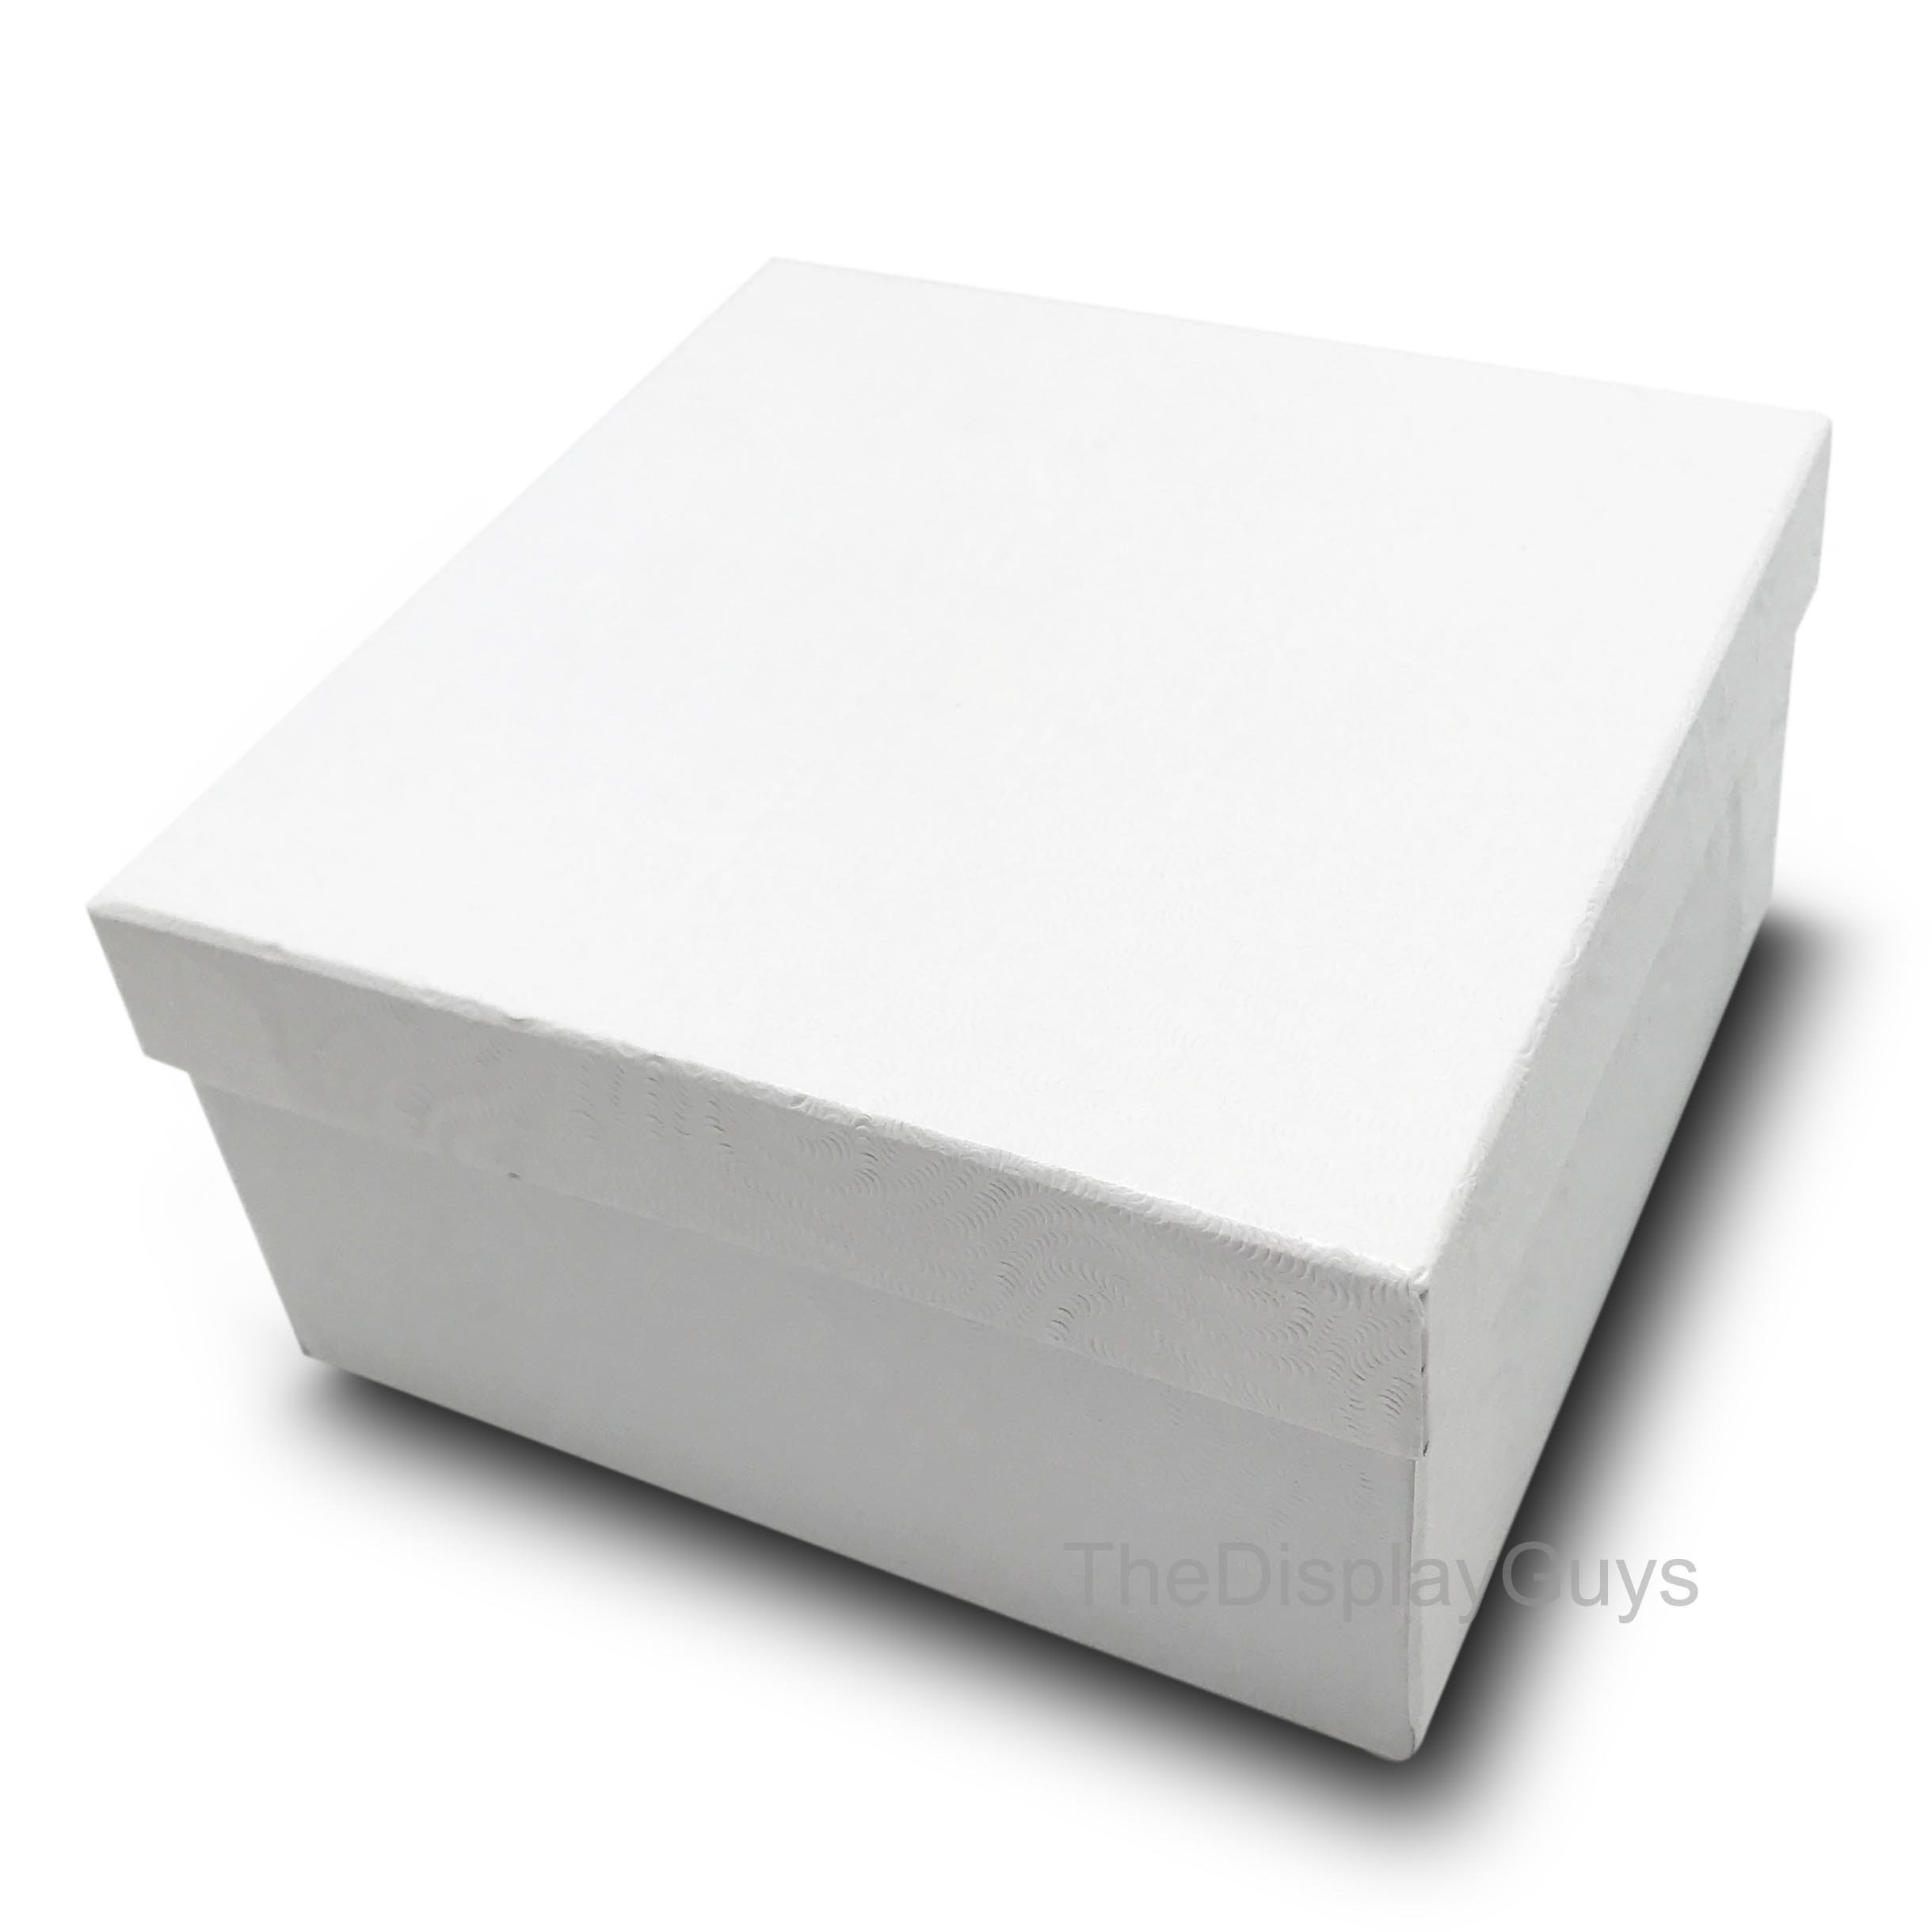 The Display Guys, Pack of 25 White 3 3/4x3 3/4x2 inches Cotton Filled Paper Jewelry Box Gift Display Case (#34)